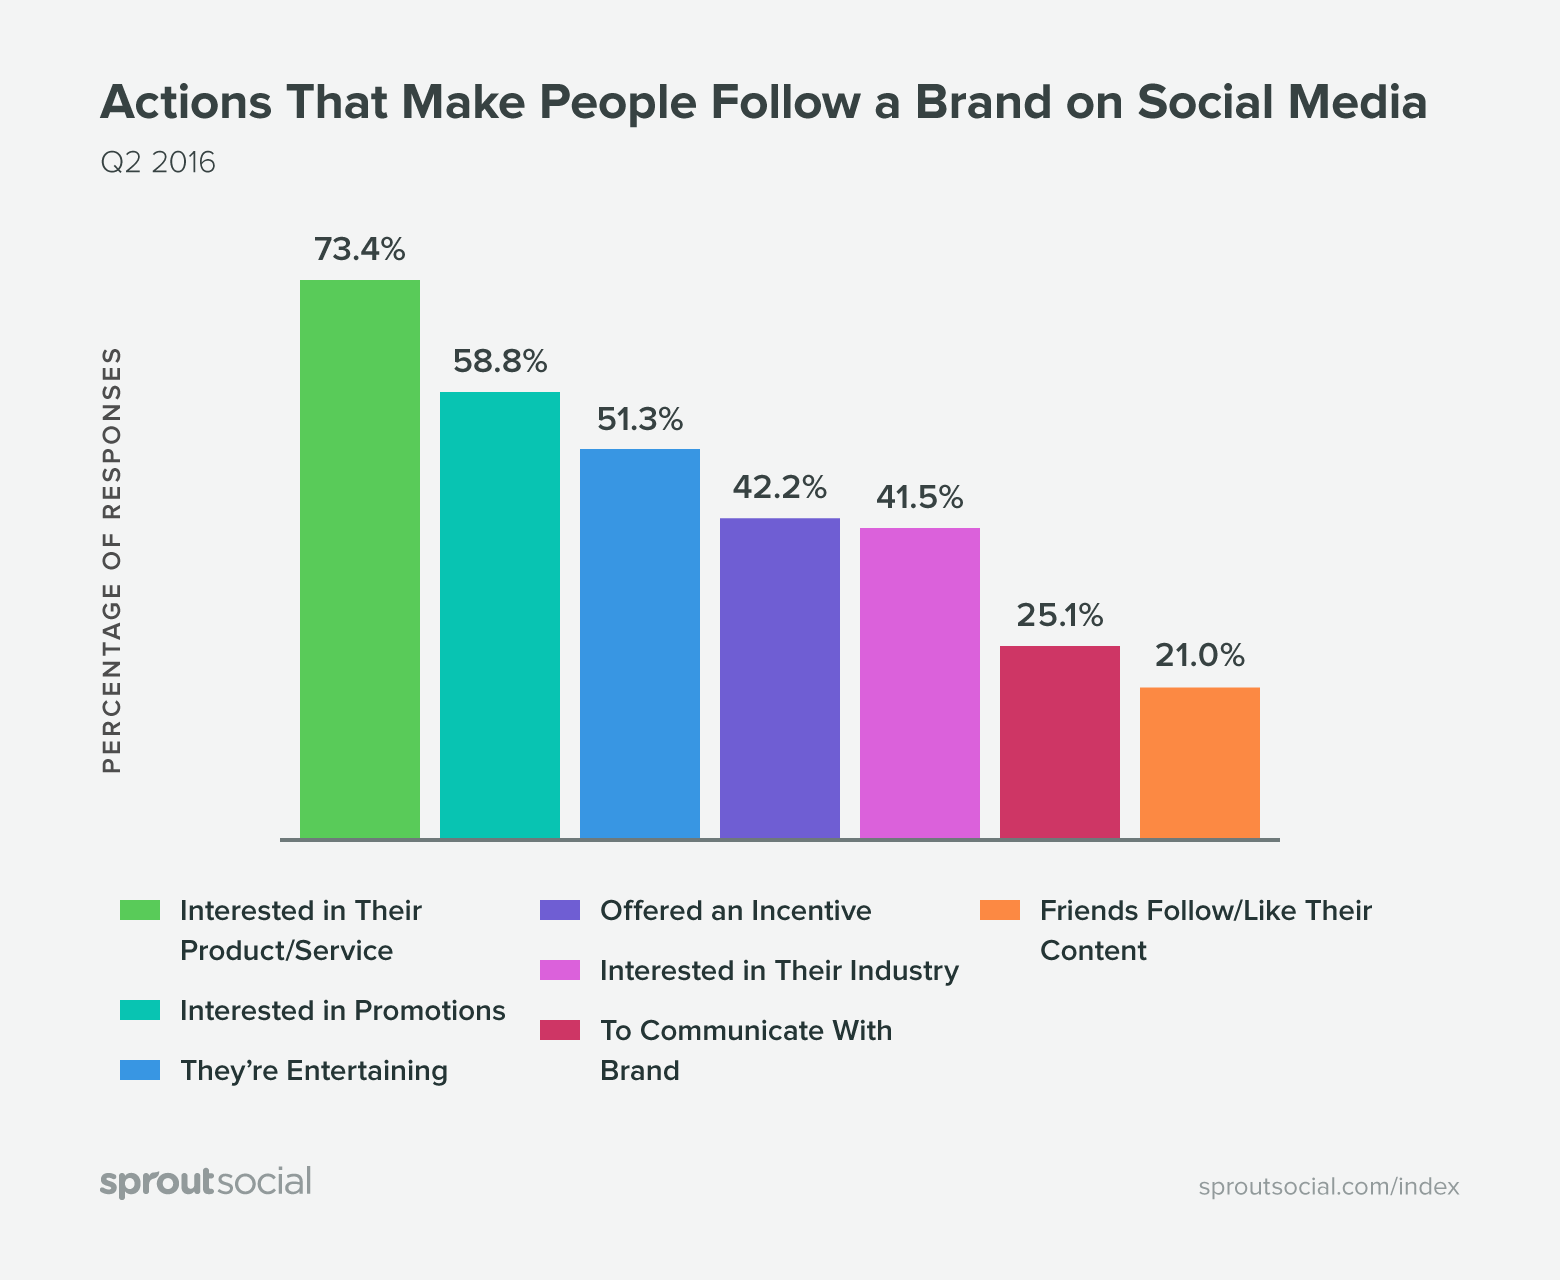 Actions That Make People Follow a Brand